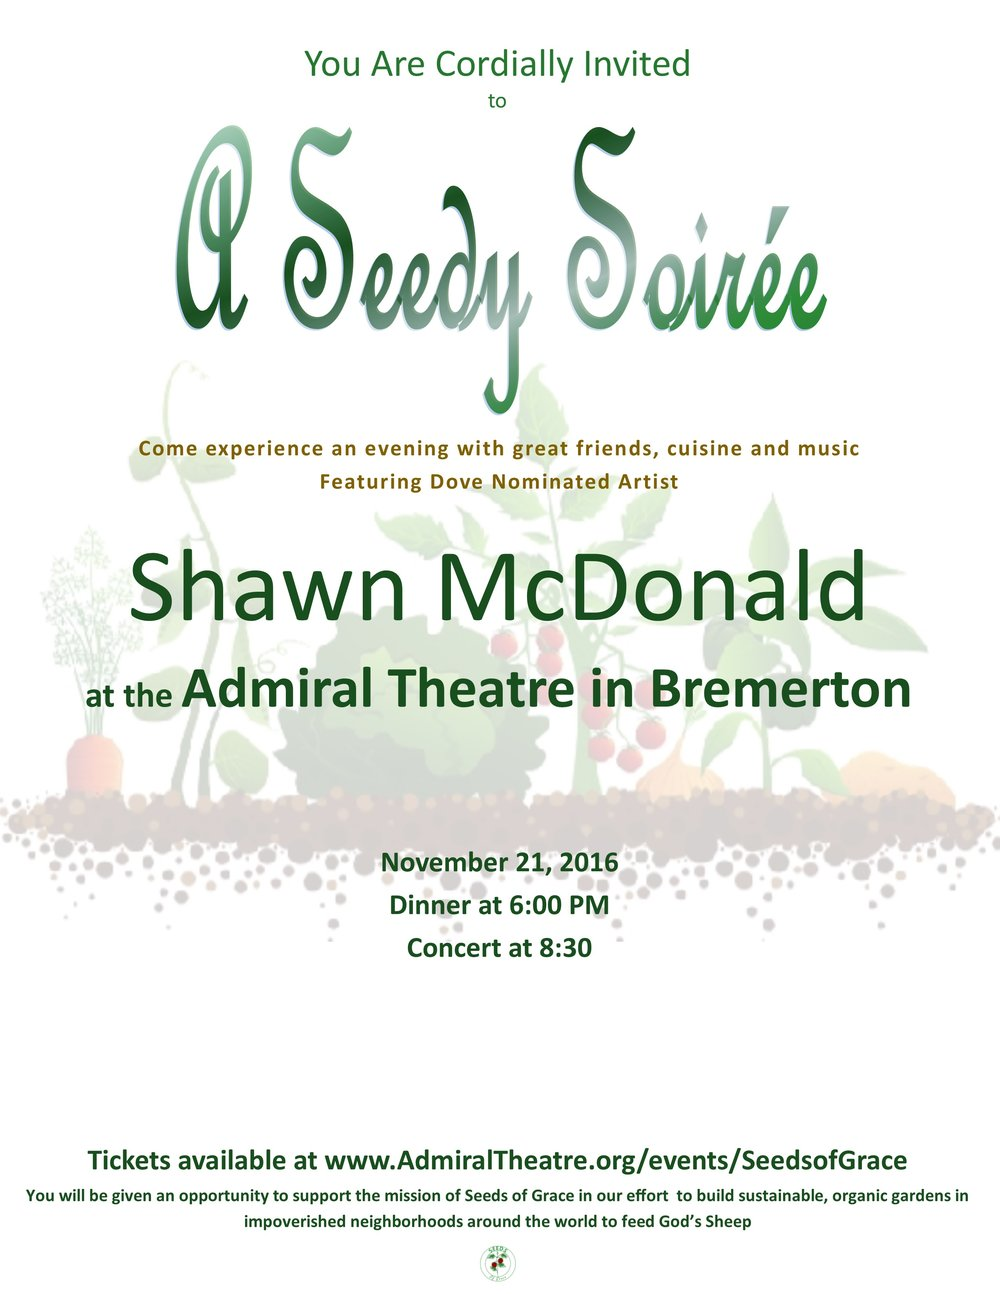 Here is the information you have been waiting for!!!  Mark your calendars and plan to come! Seeds of Grace presents Shawn McDonald in A Seedy Soirée; a dinner and fundraising event at the Admiral Theater in Bremerton.  Tickets go on sale on September 15, 2016.